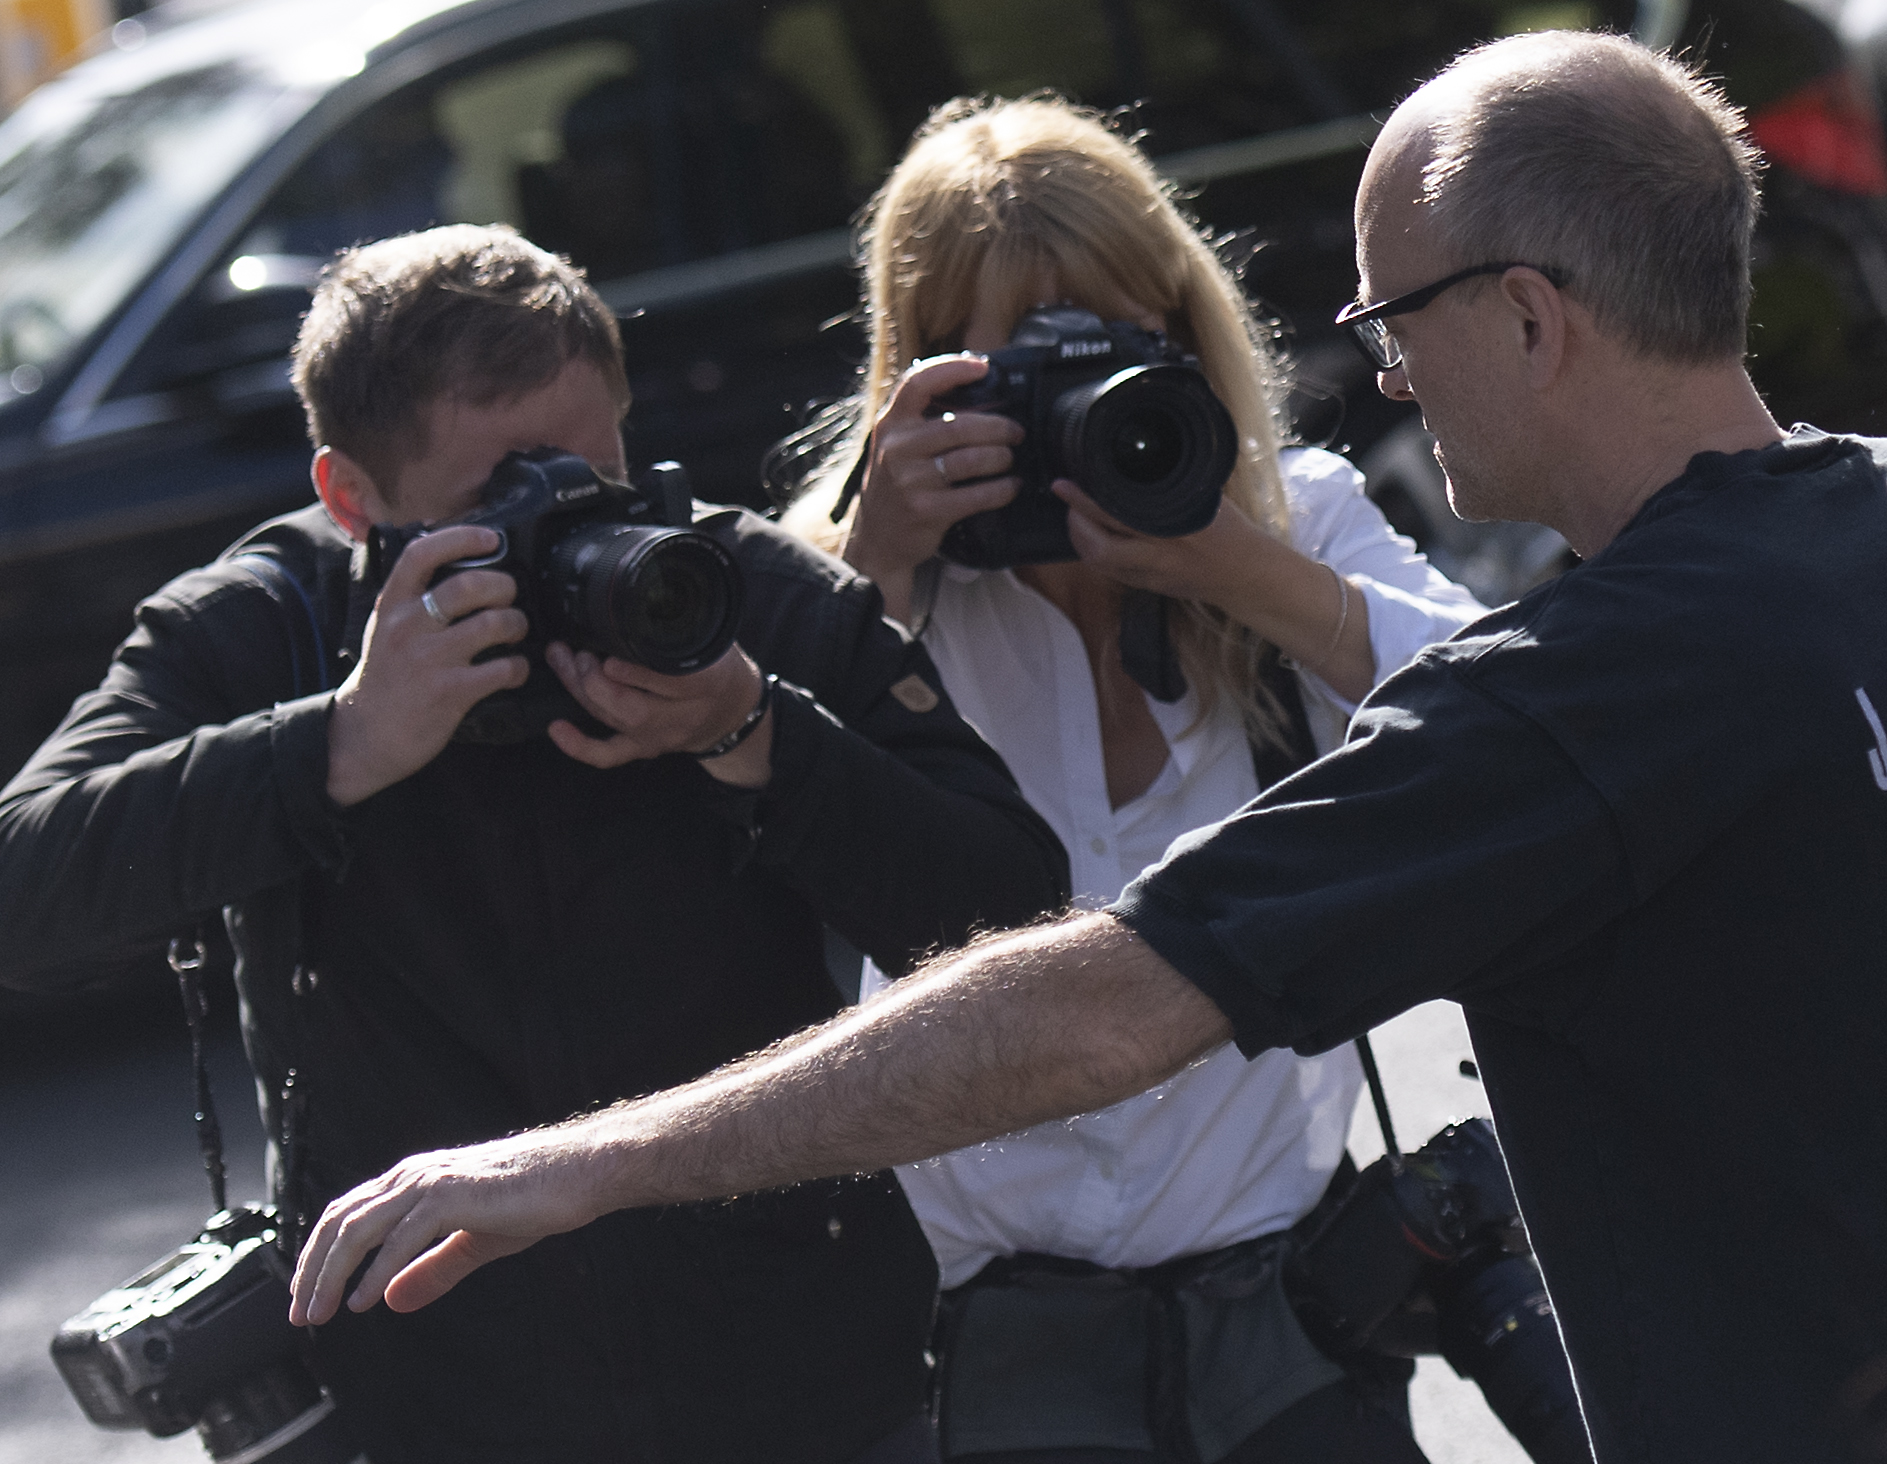 Number 10 special advisor Dominic Cummings leaves his residence in north London on May 28, 2020. (Photo by Justin TALLIS / AFP) (Photo by JUSTIN TALLIS/AFP via Getty Images)